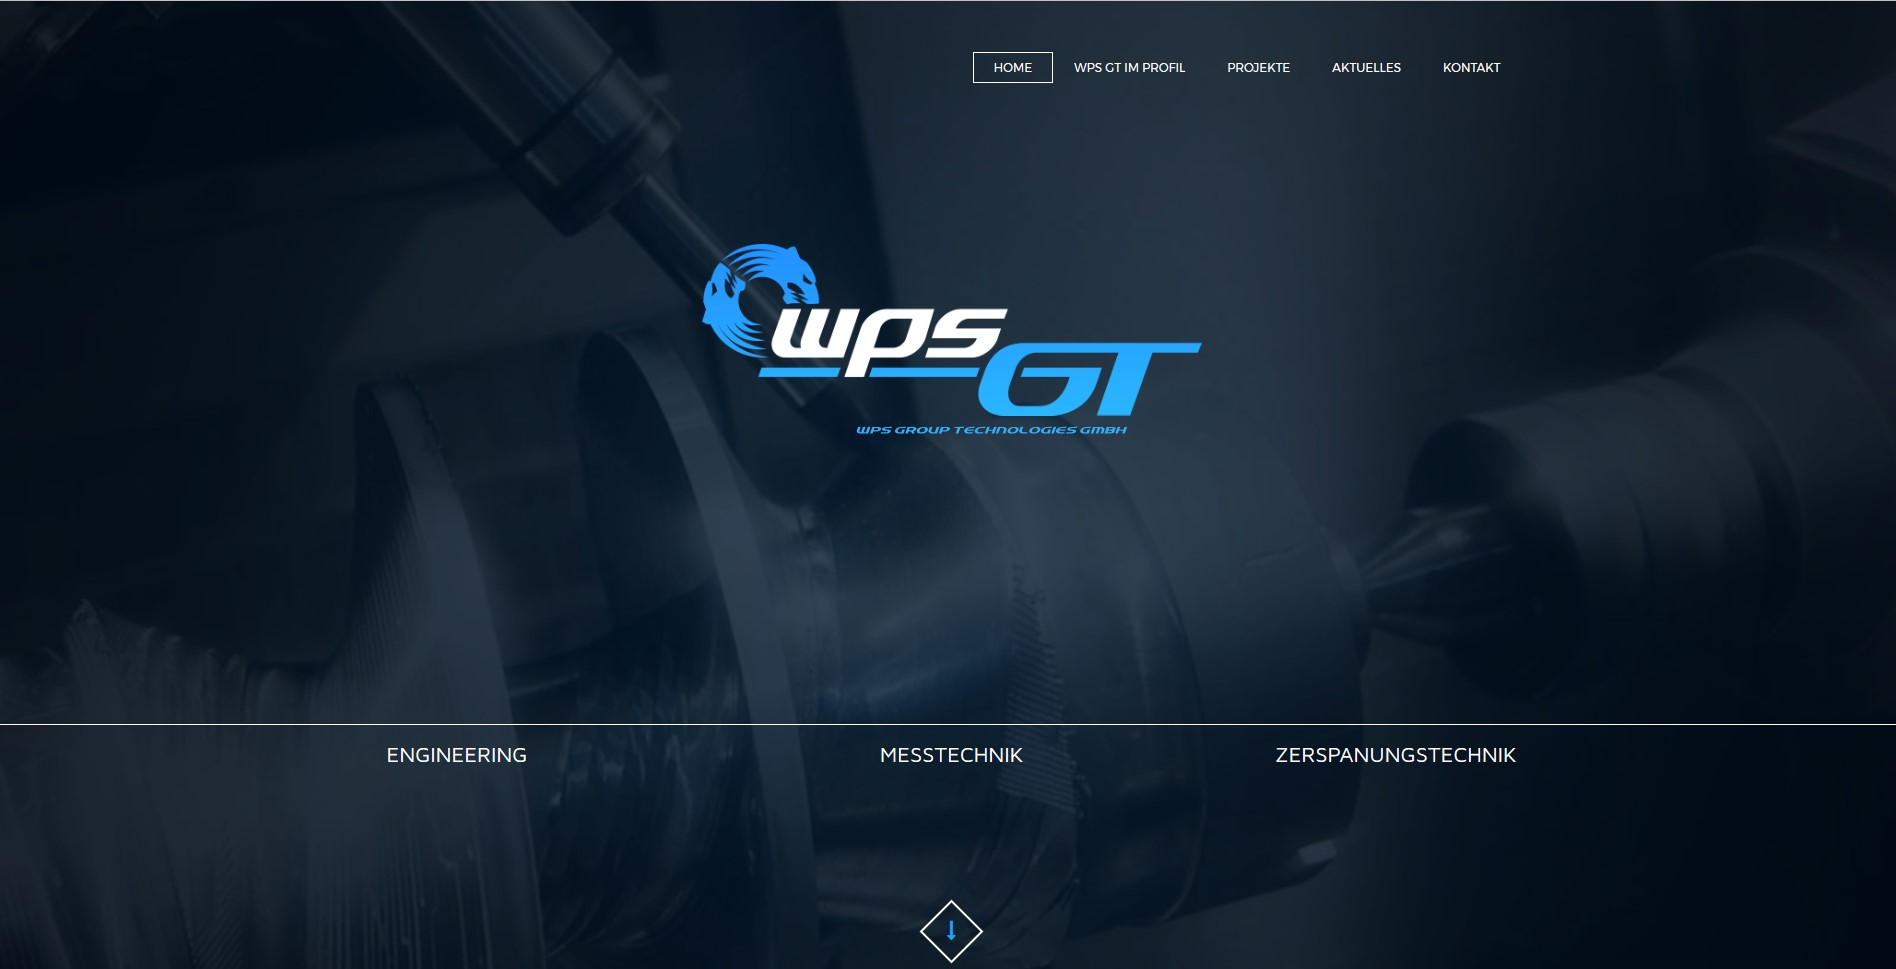 WPS Group Technologies GmbH